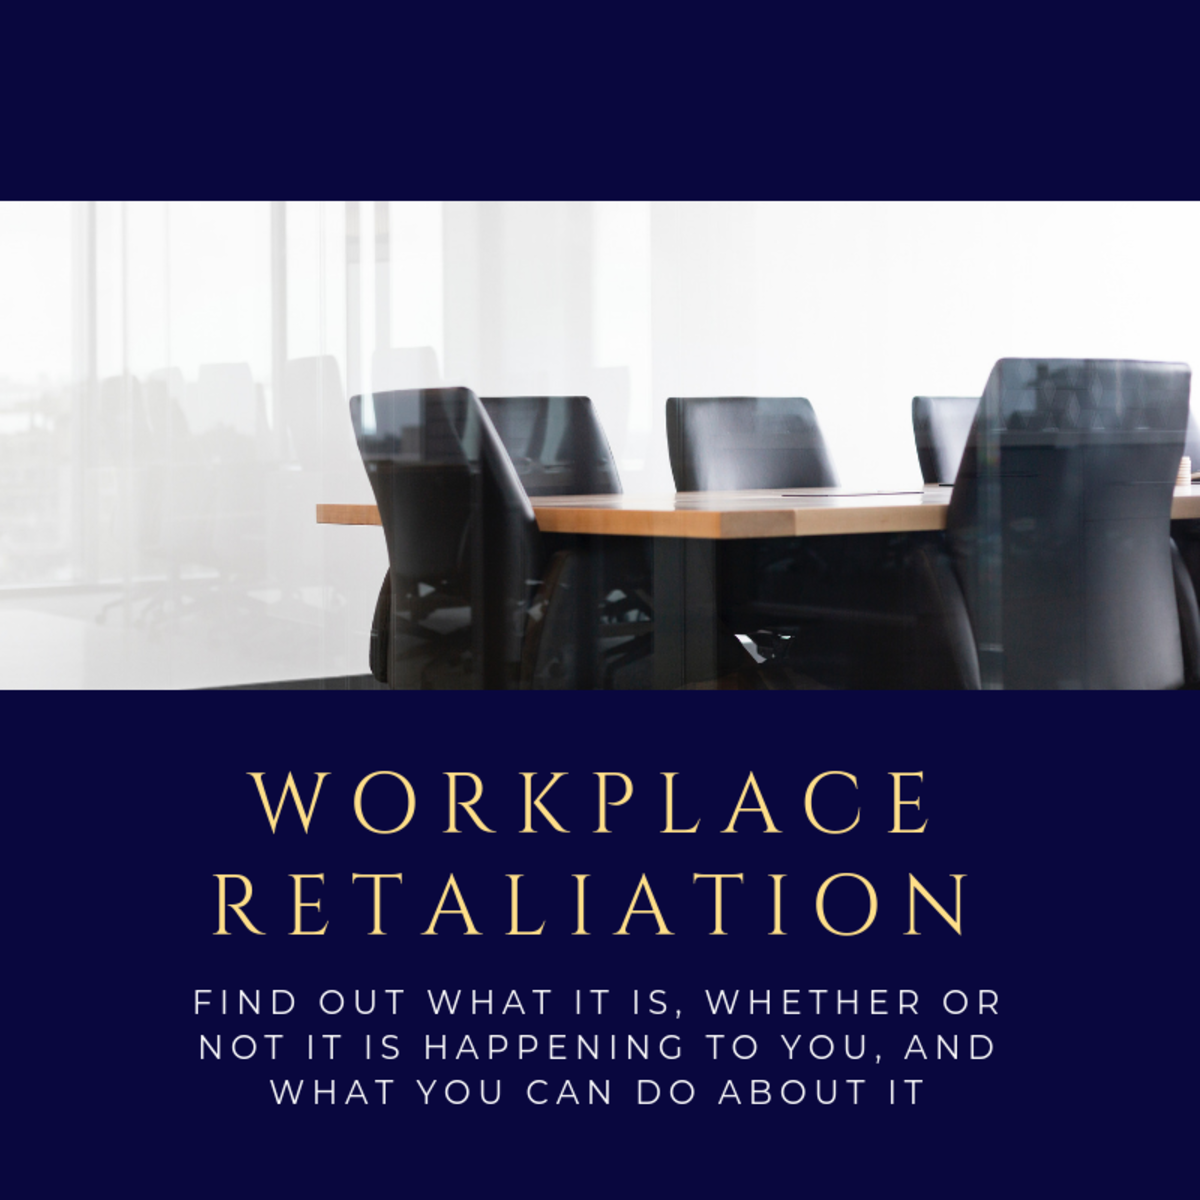 What Is Workplace Retaliation? And Why Are Employers So Afraid of It?